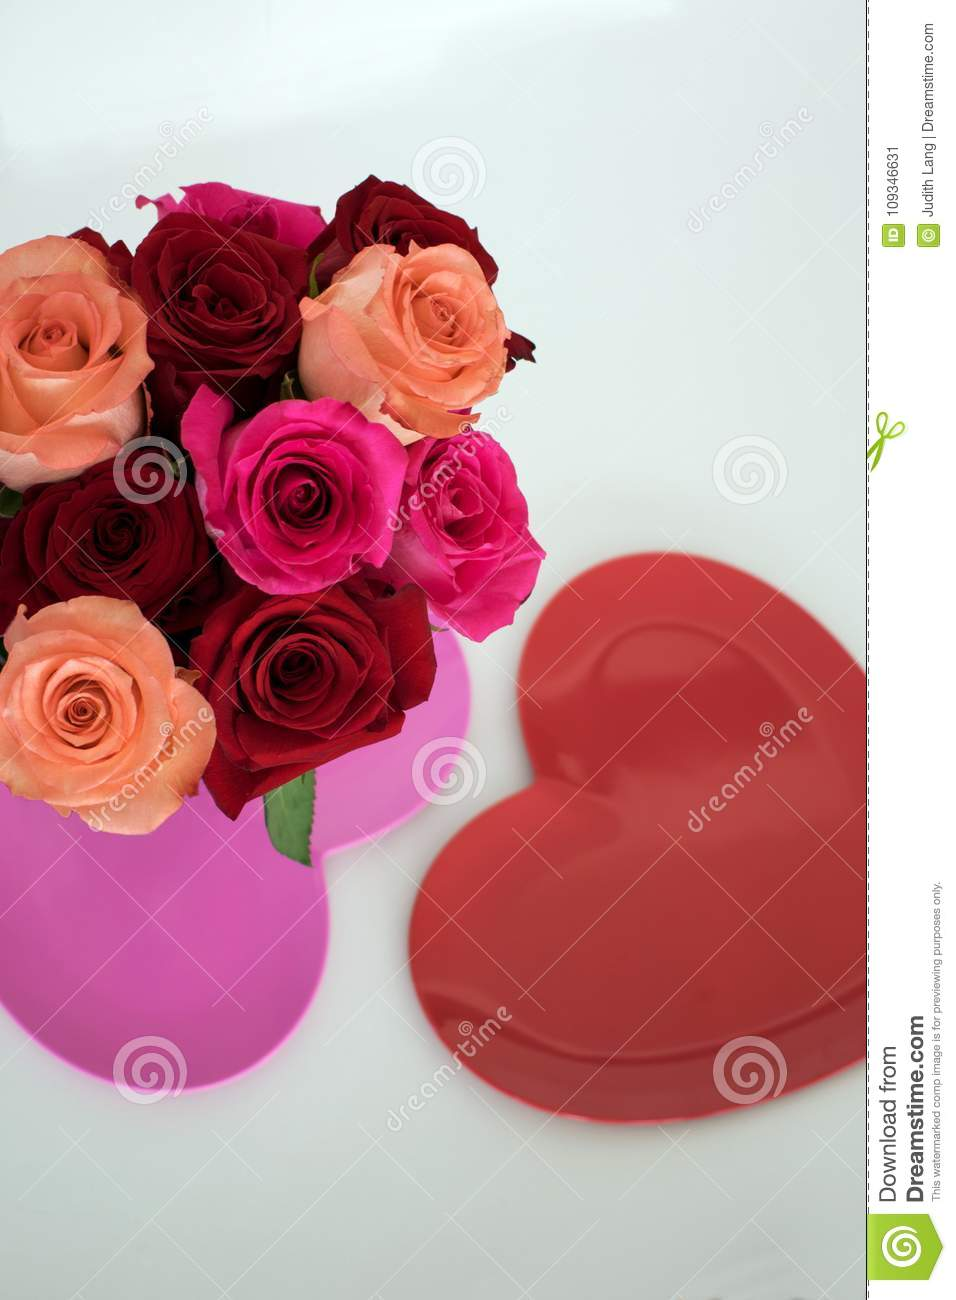 Red and pink roses arranged on top of pink heart shaped plate